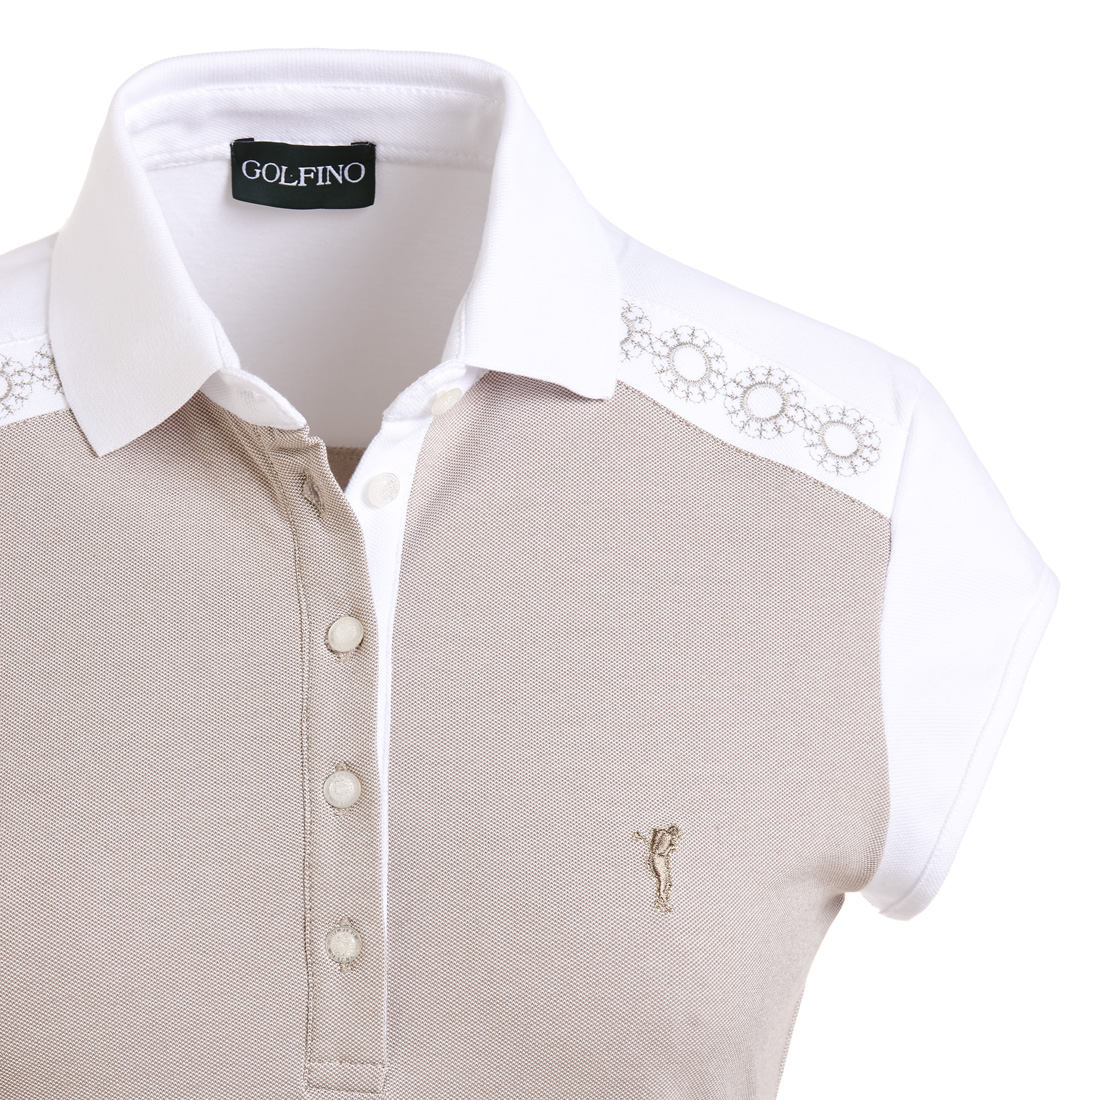 Damen Golfpoloshirt mit Sun Protection und edler Stickerei in Slim Fit